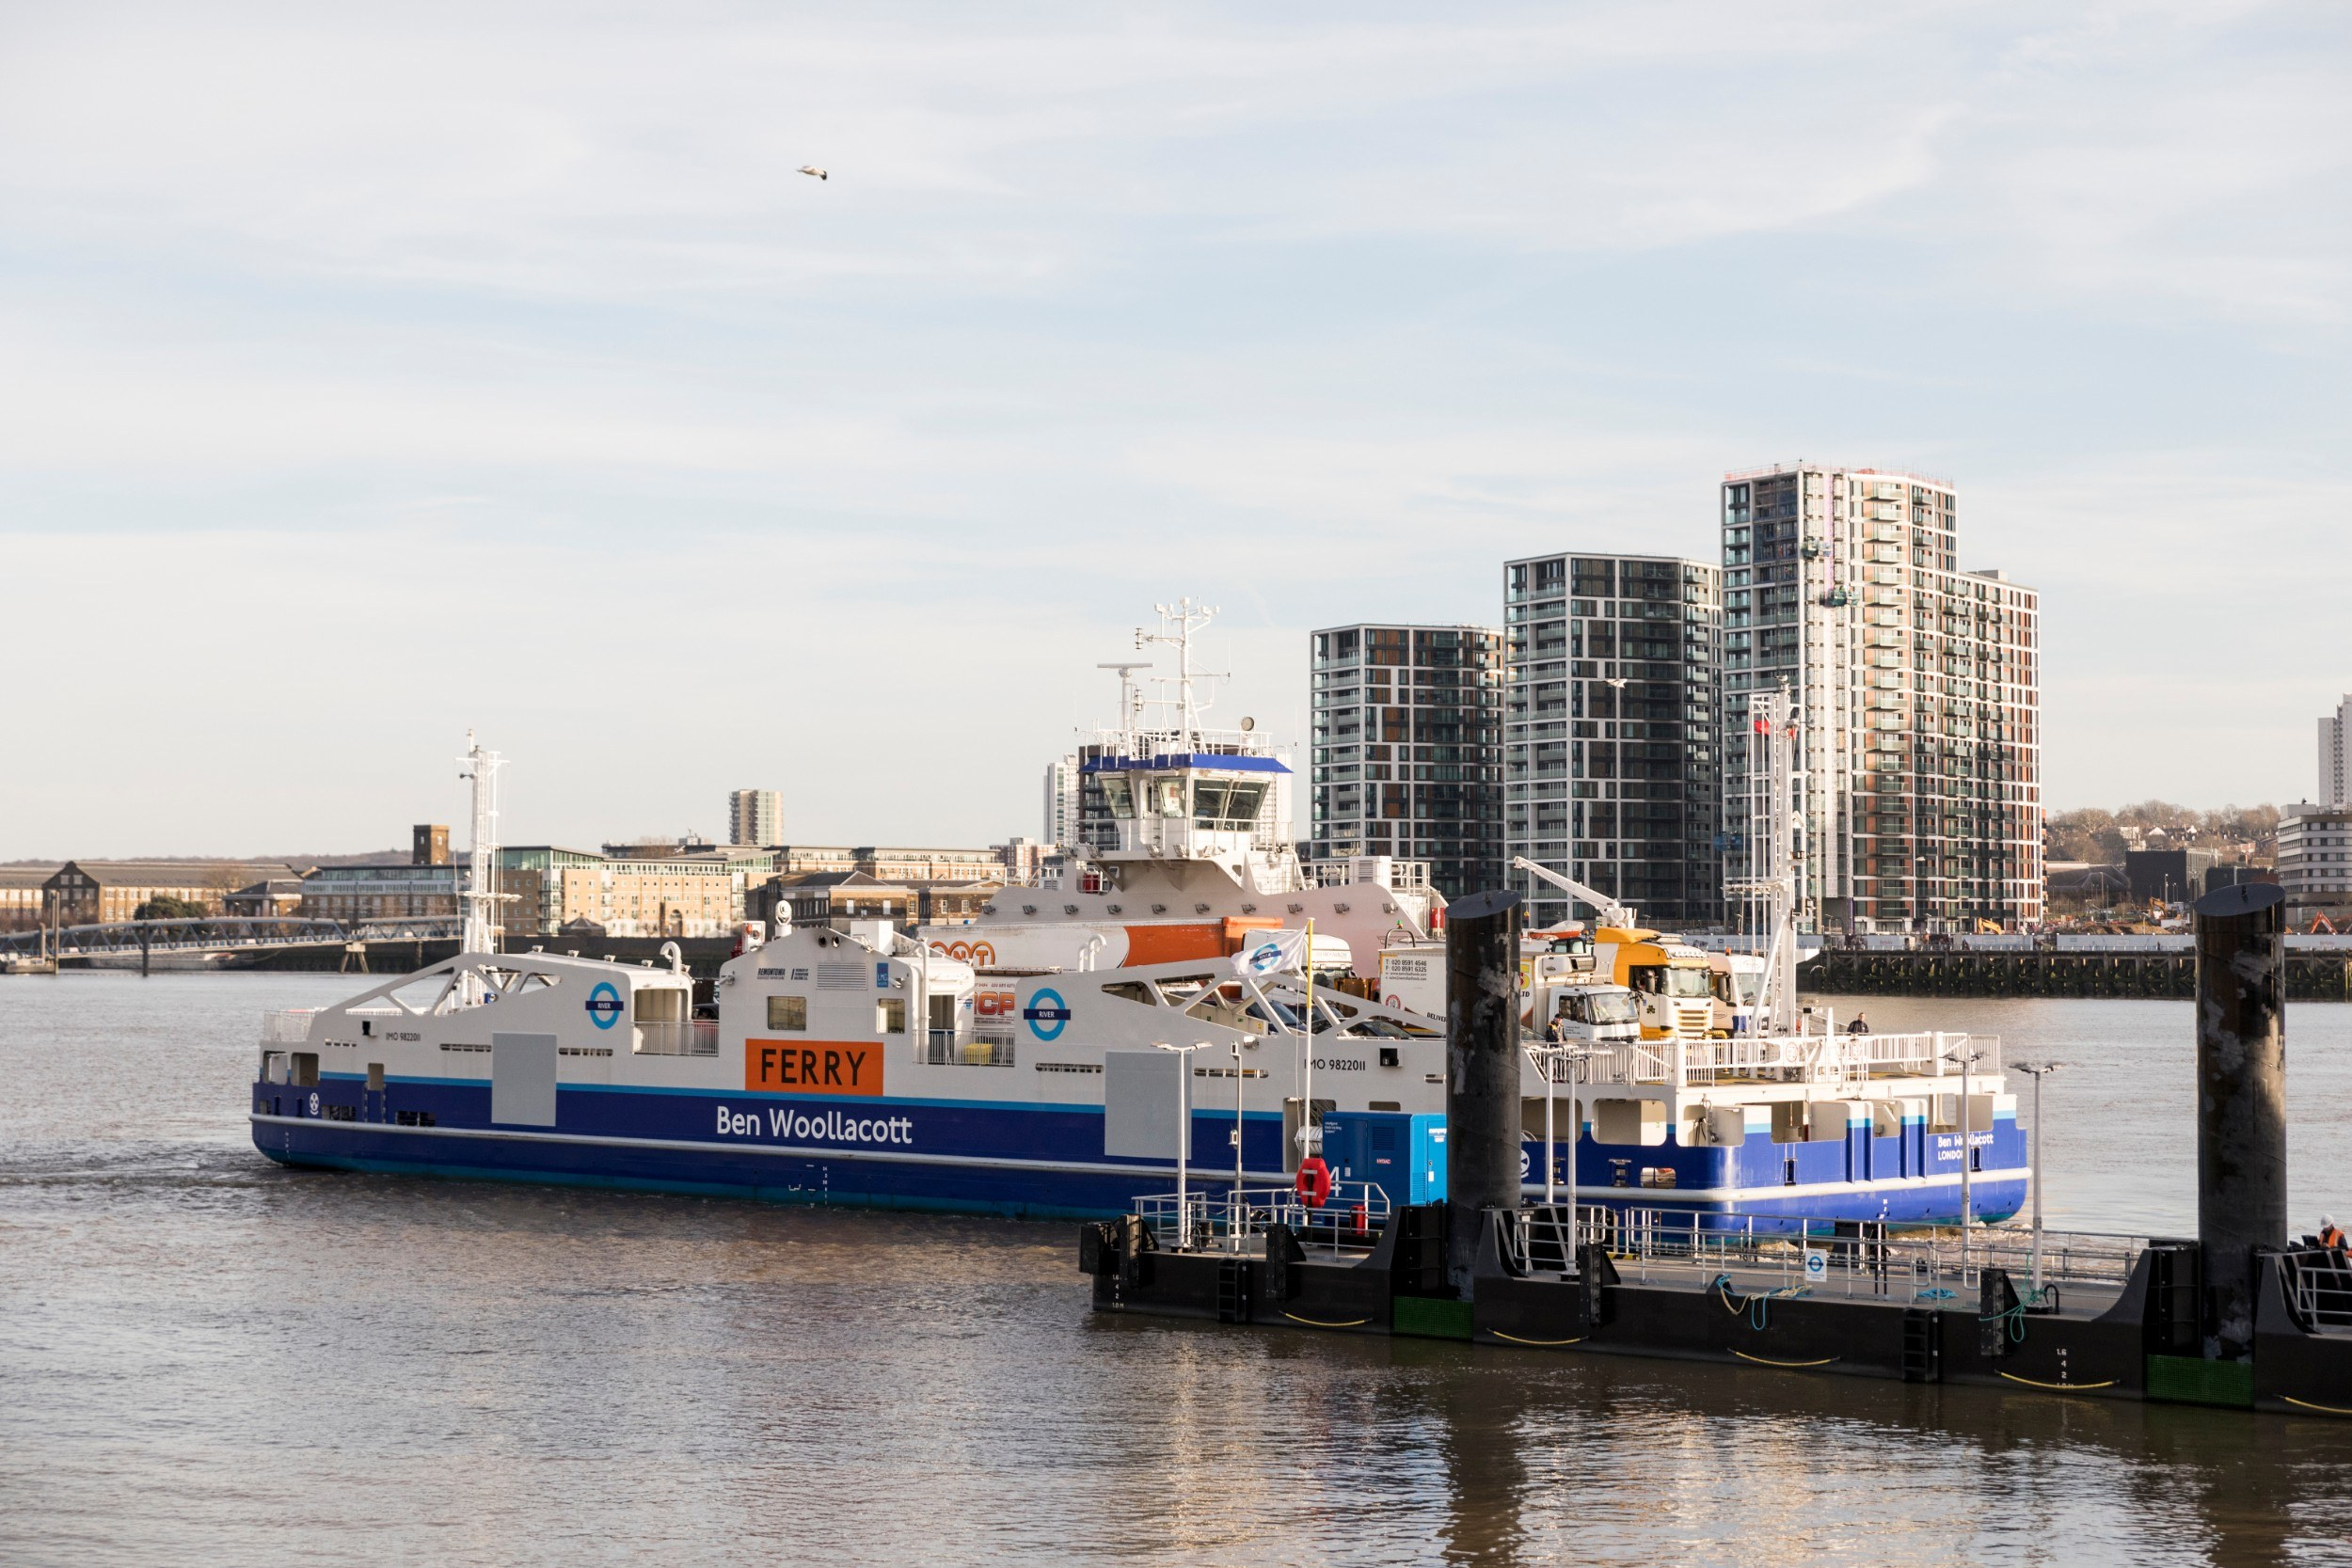 Ferry leaving its quay with Woolwich towers in the background